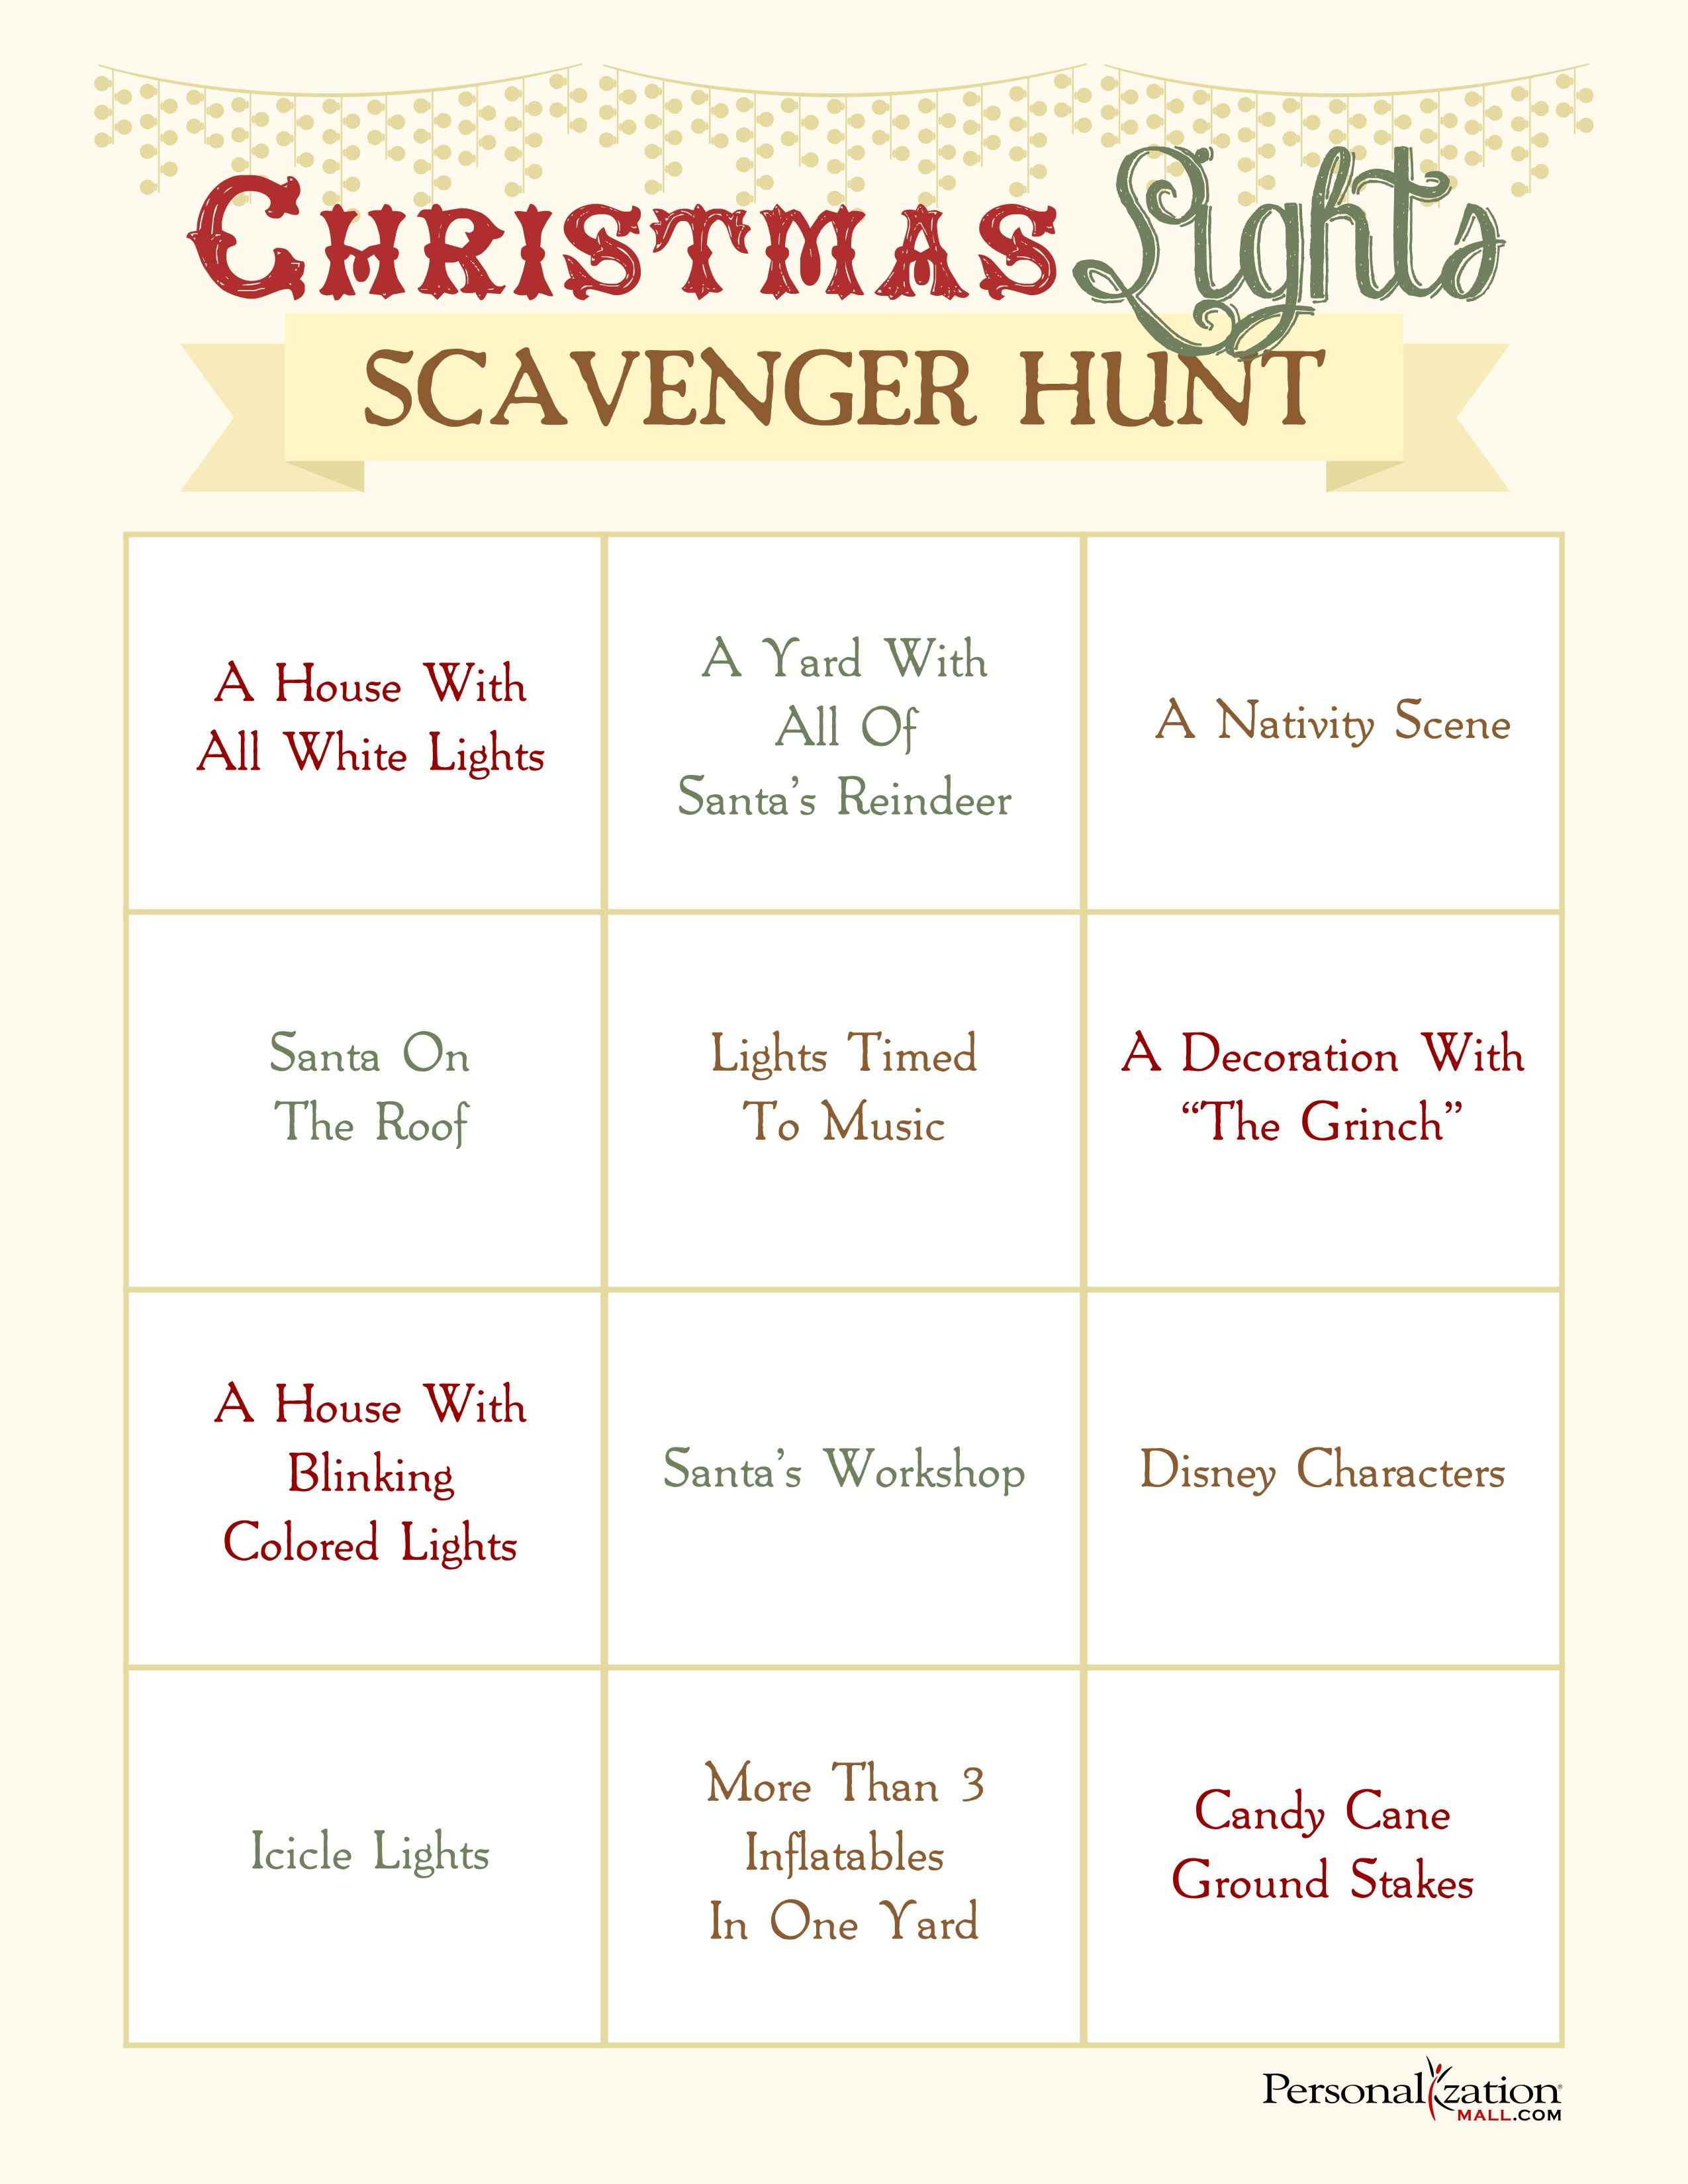 christmas party scavenger hunt ideas